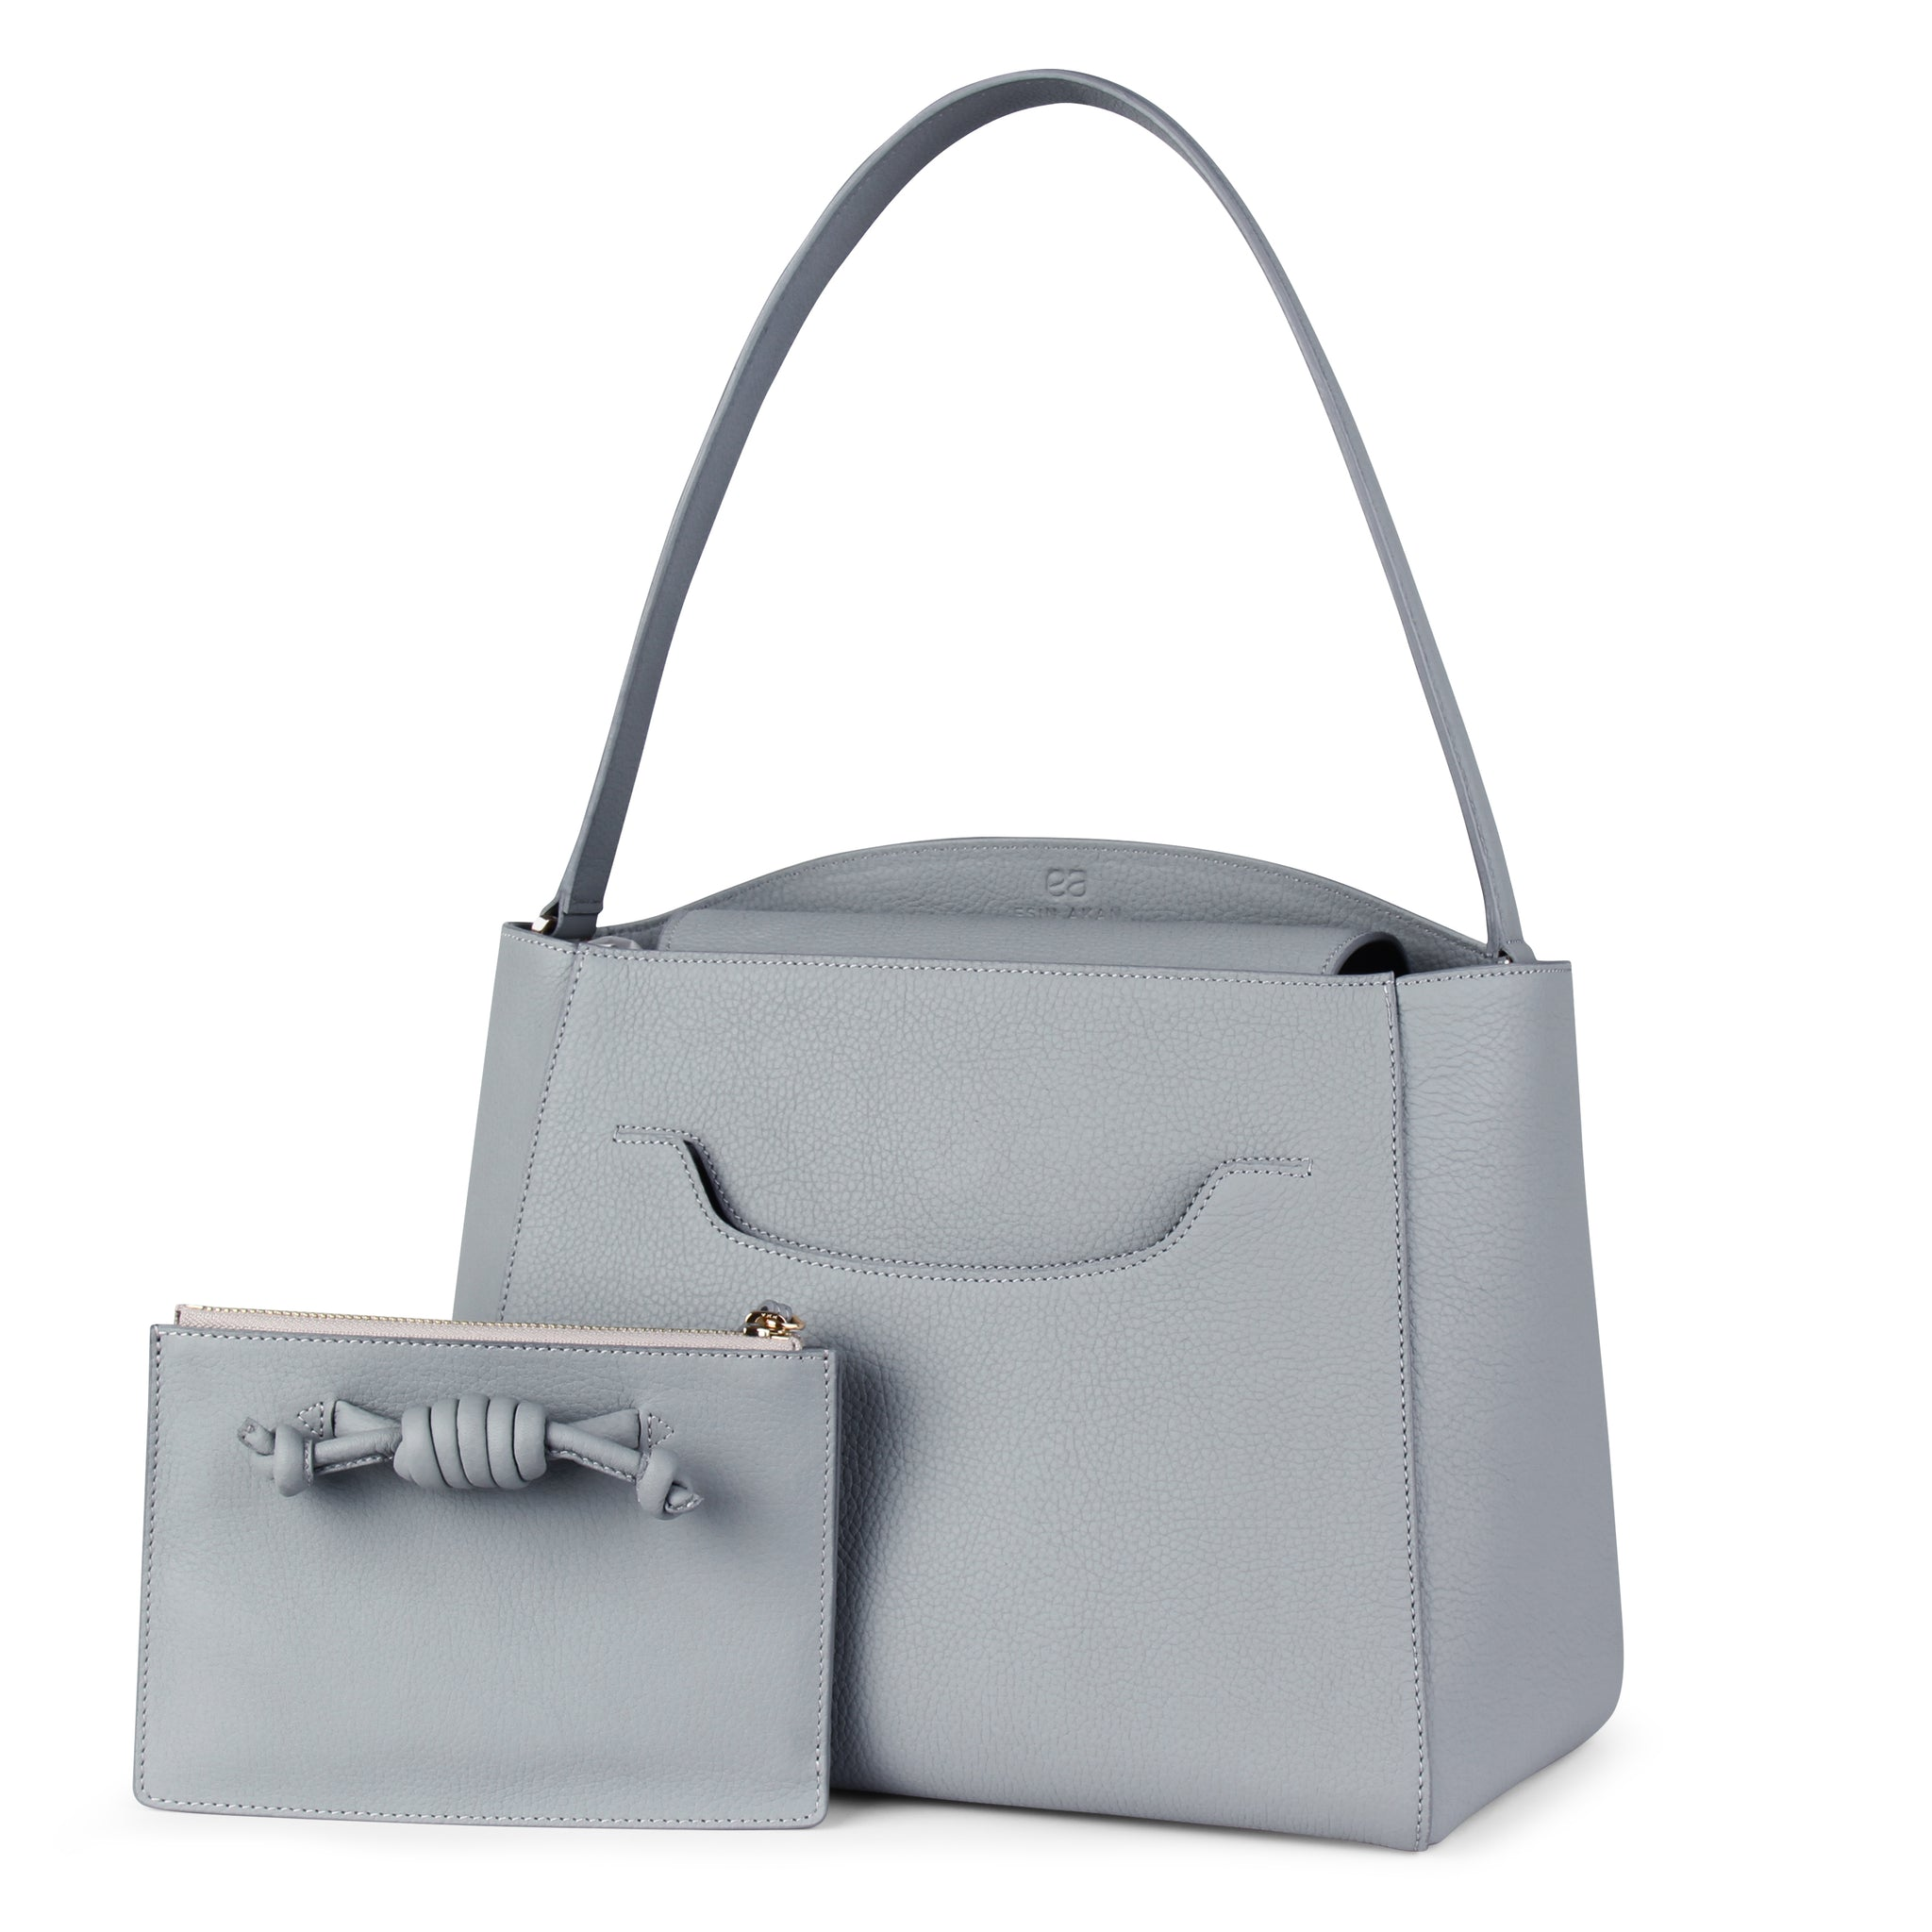 A light grey convertible leather tote bag for work with a detachable clutch in front, front image.